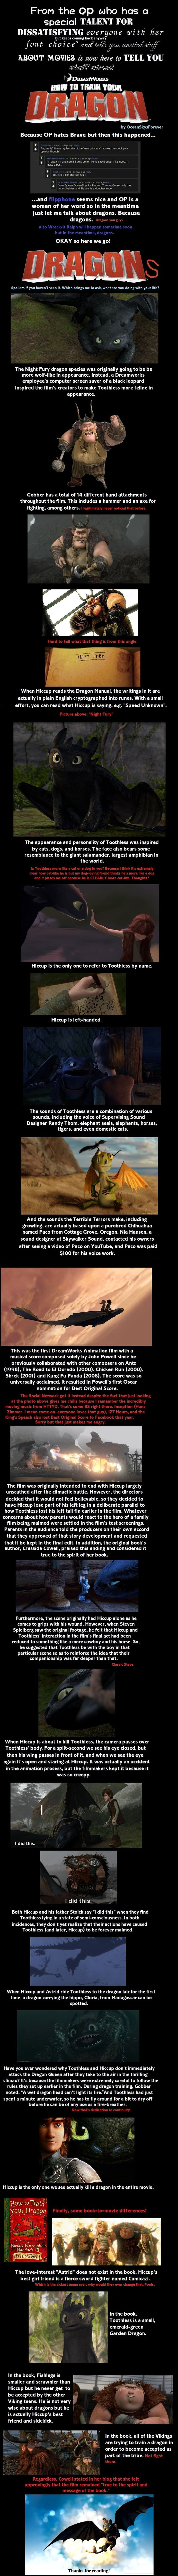 Facts About The Movie And The Bookd The Terrible Terrors, The One That  Hiccup Petted In The Movie, Was Actually How Theinal Toothless Was  Going To